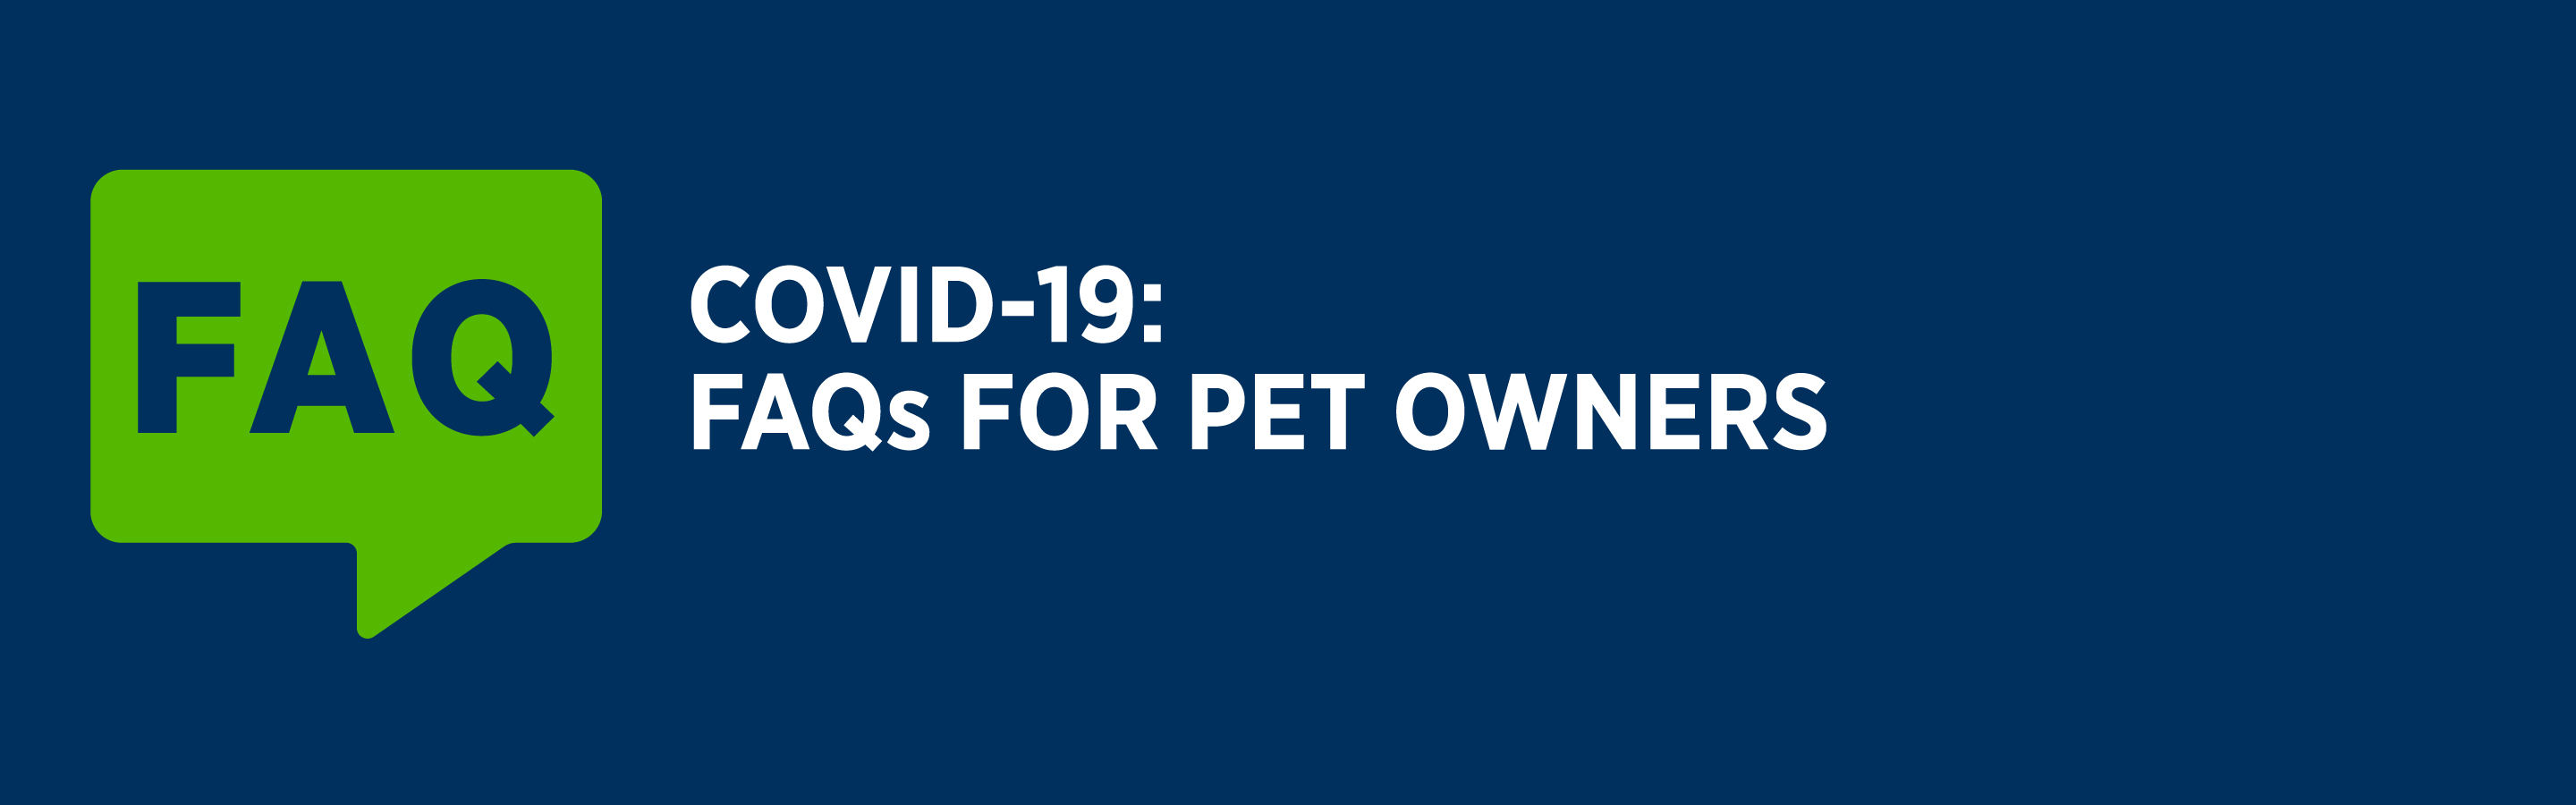 COVID-19 FAQs for pet owners